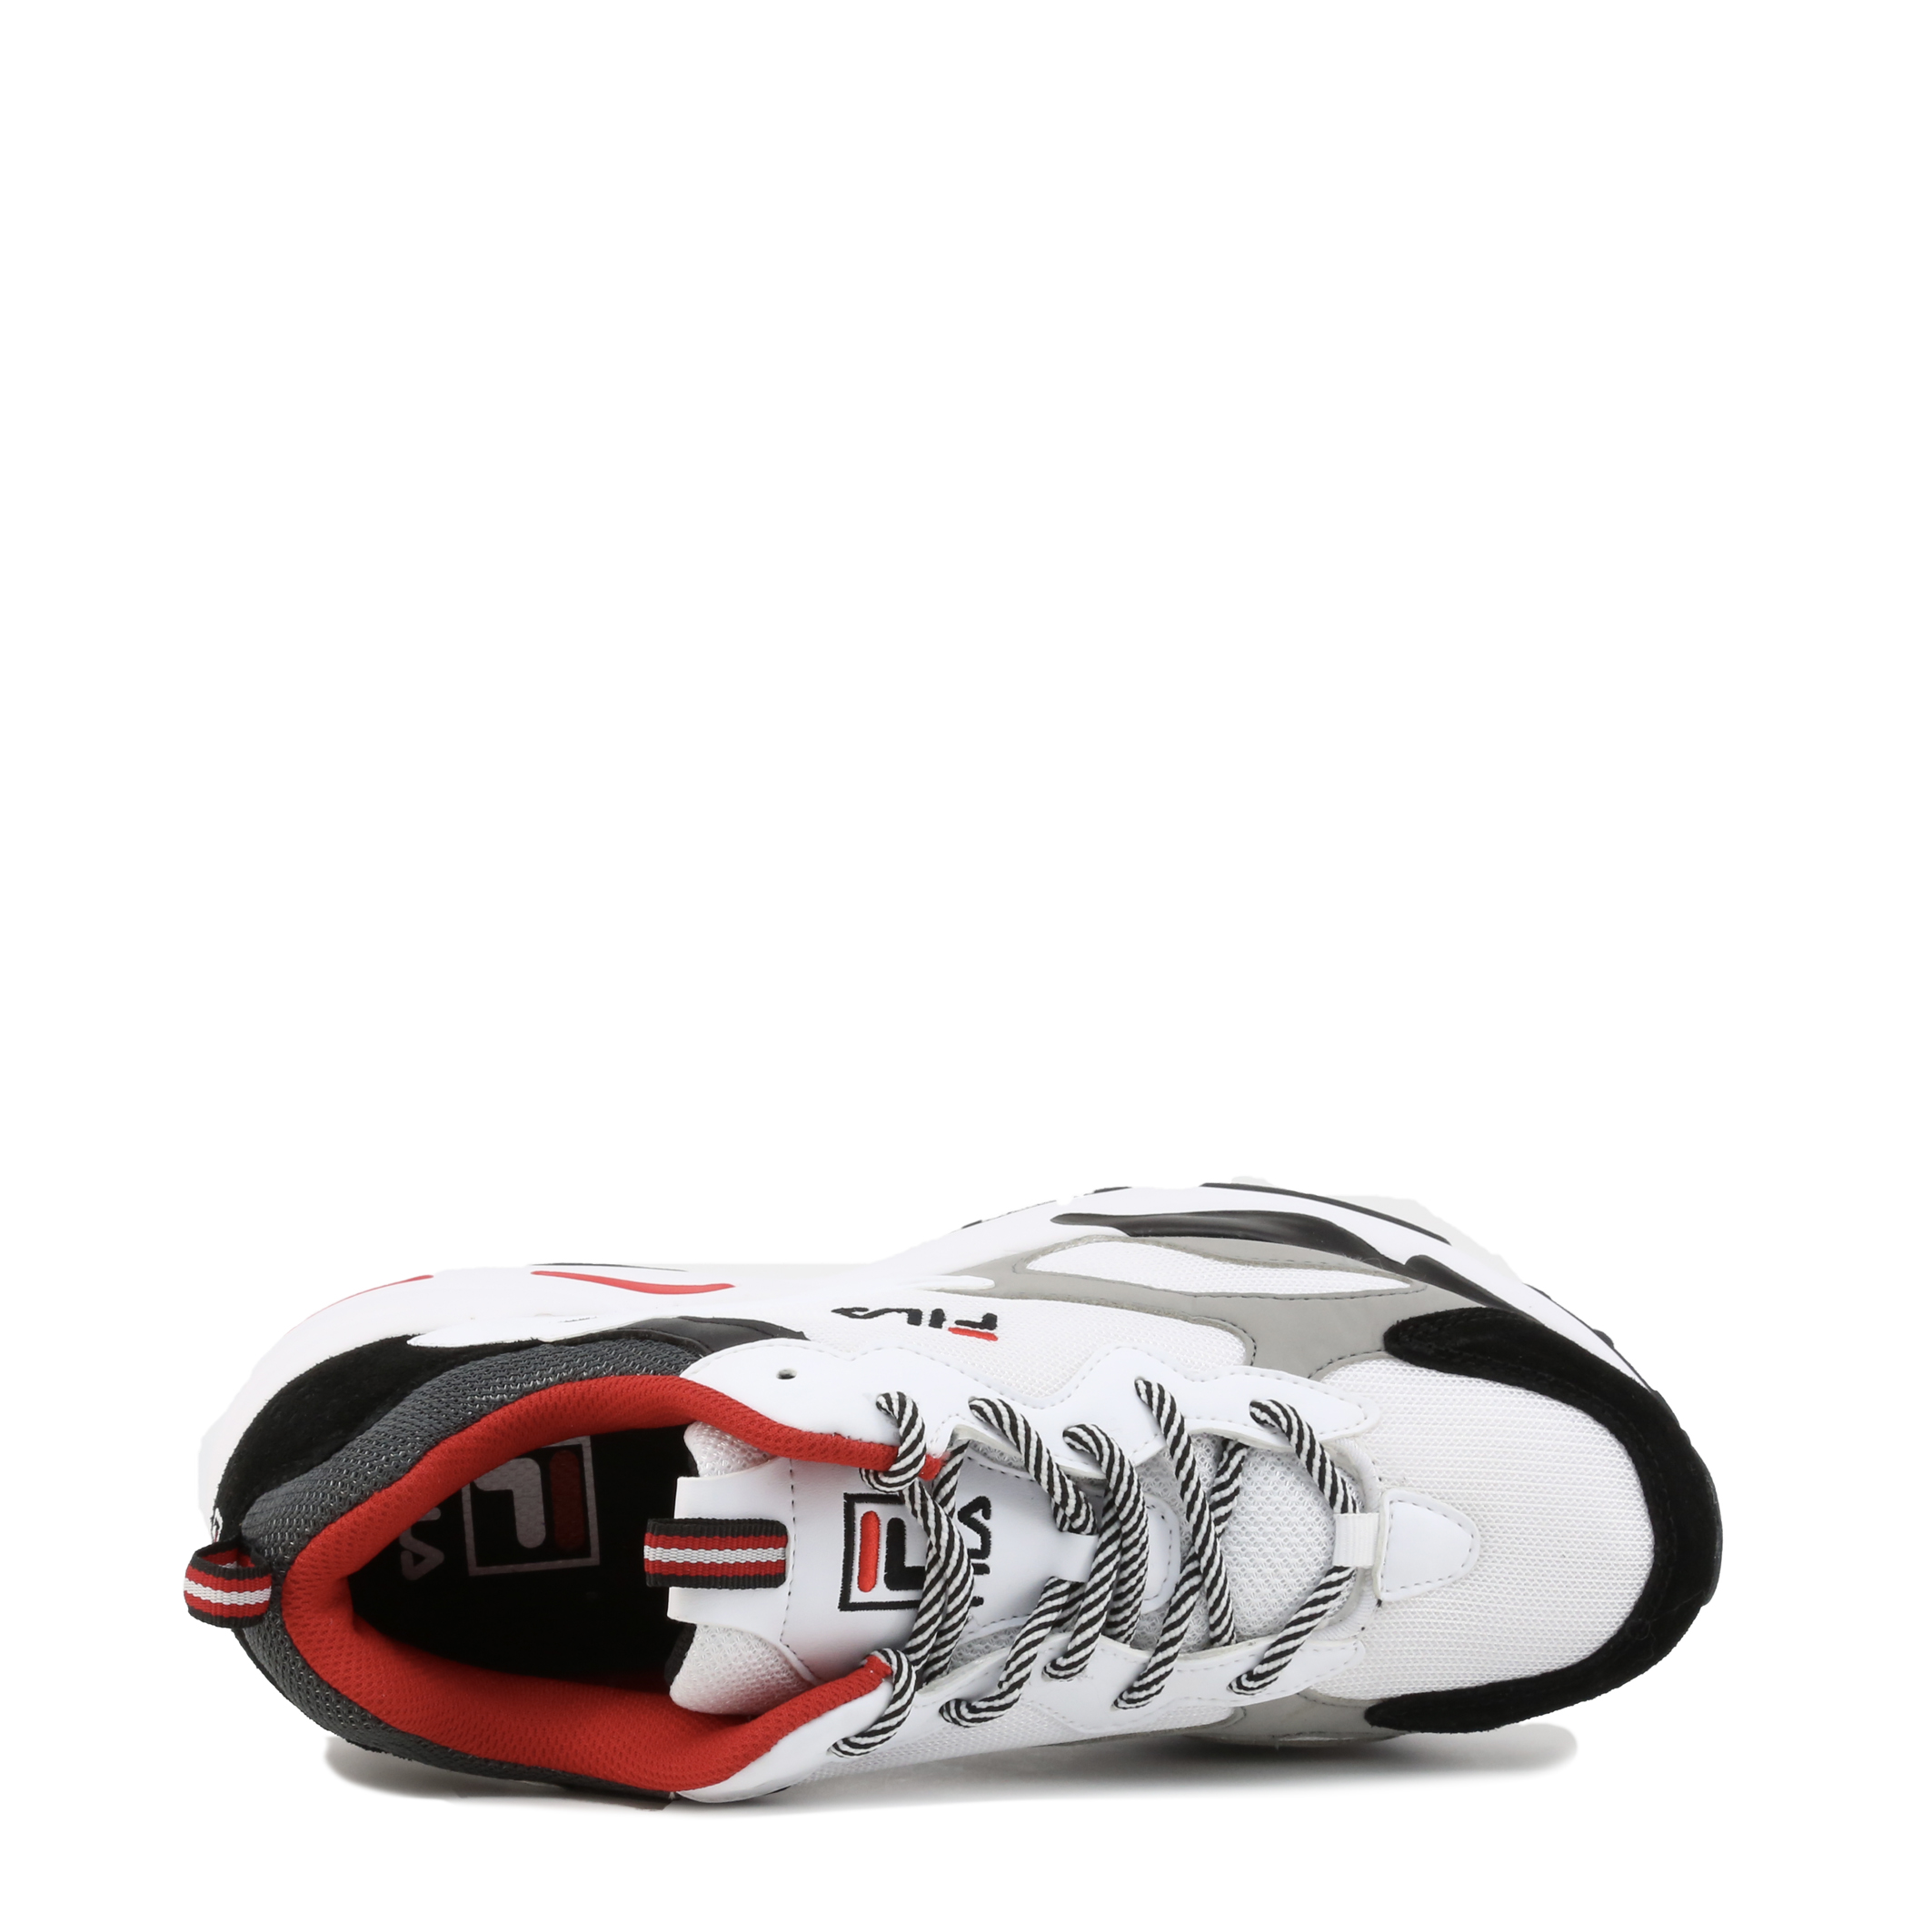 Chaussures   Fila RAY-TRACER_1010813 white